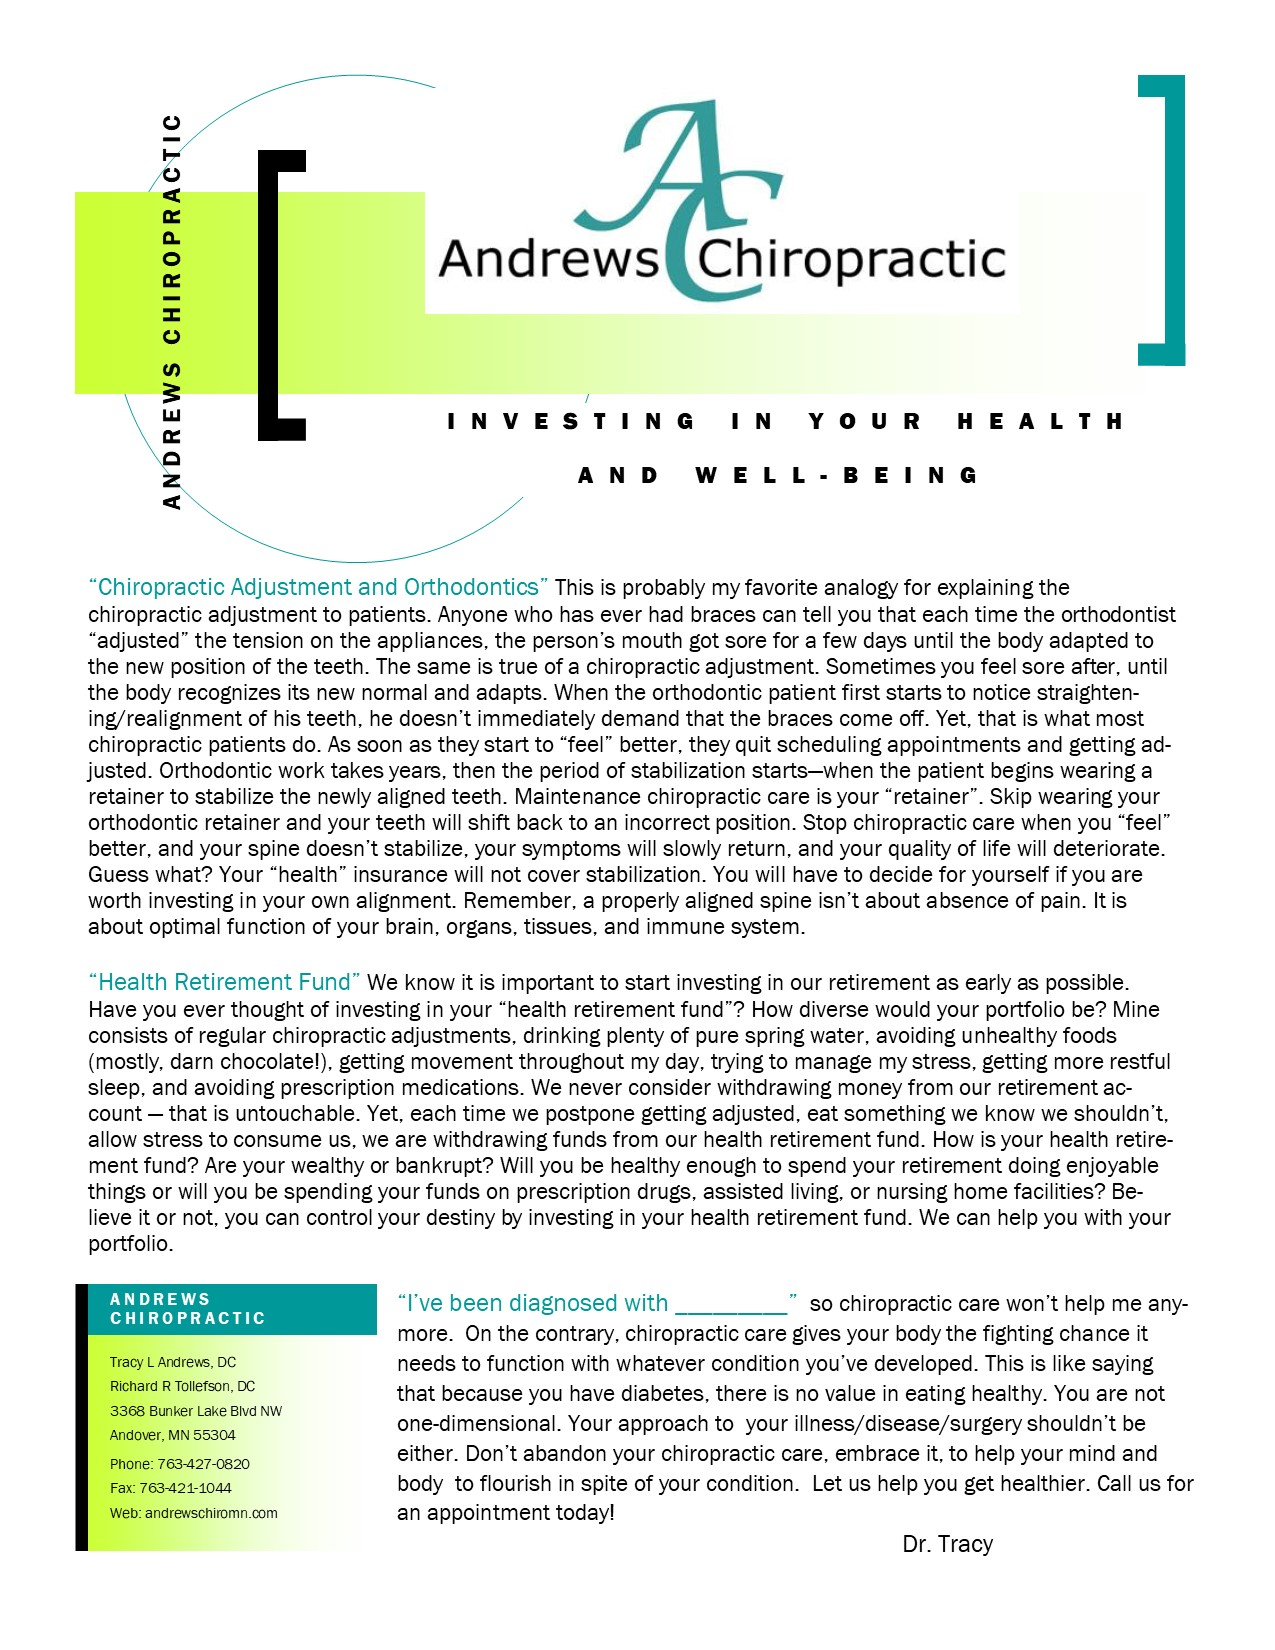 Chiropractic and Orthodontics